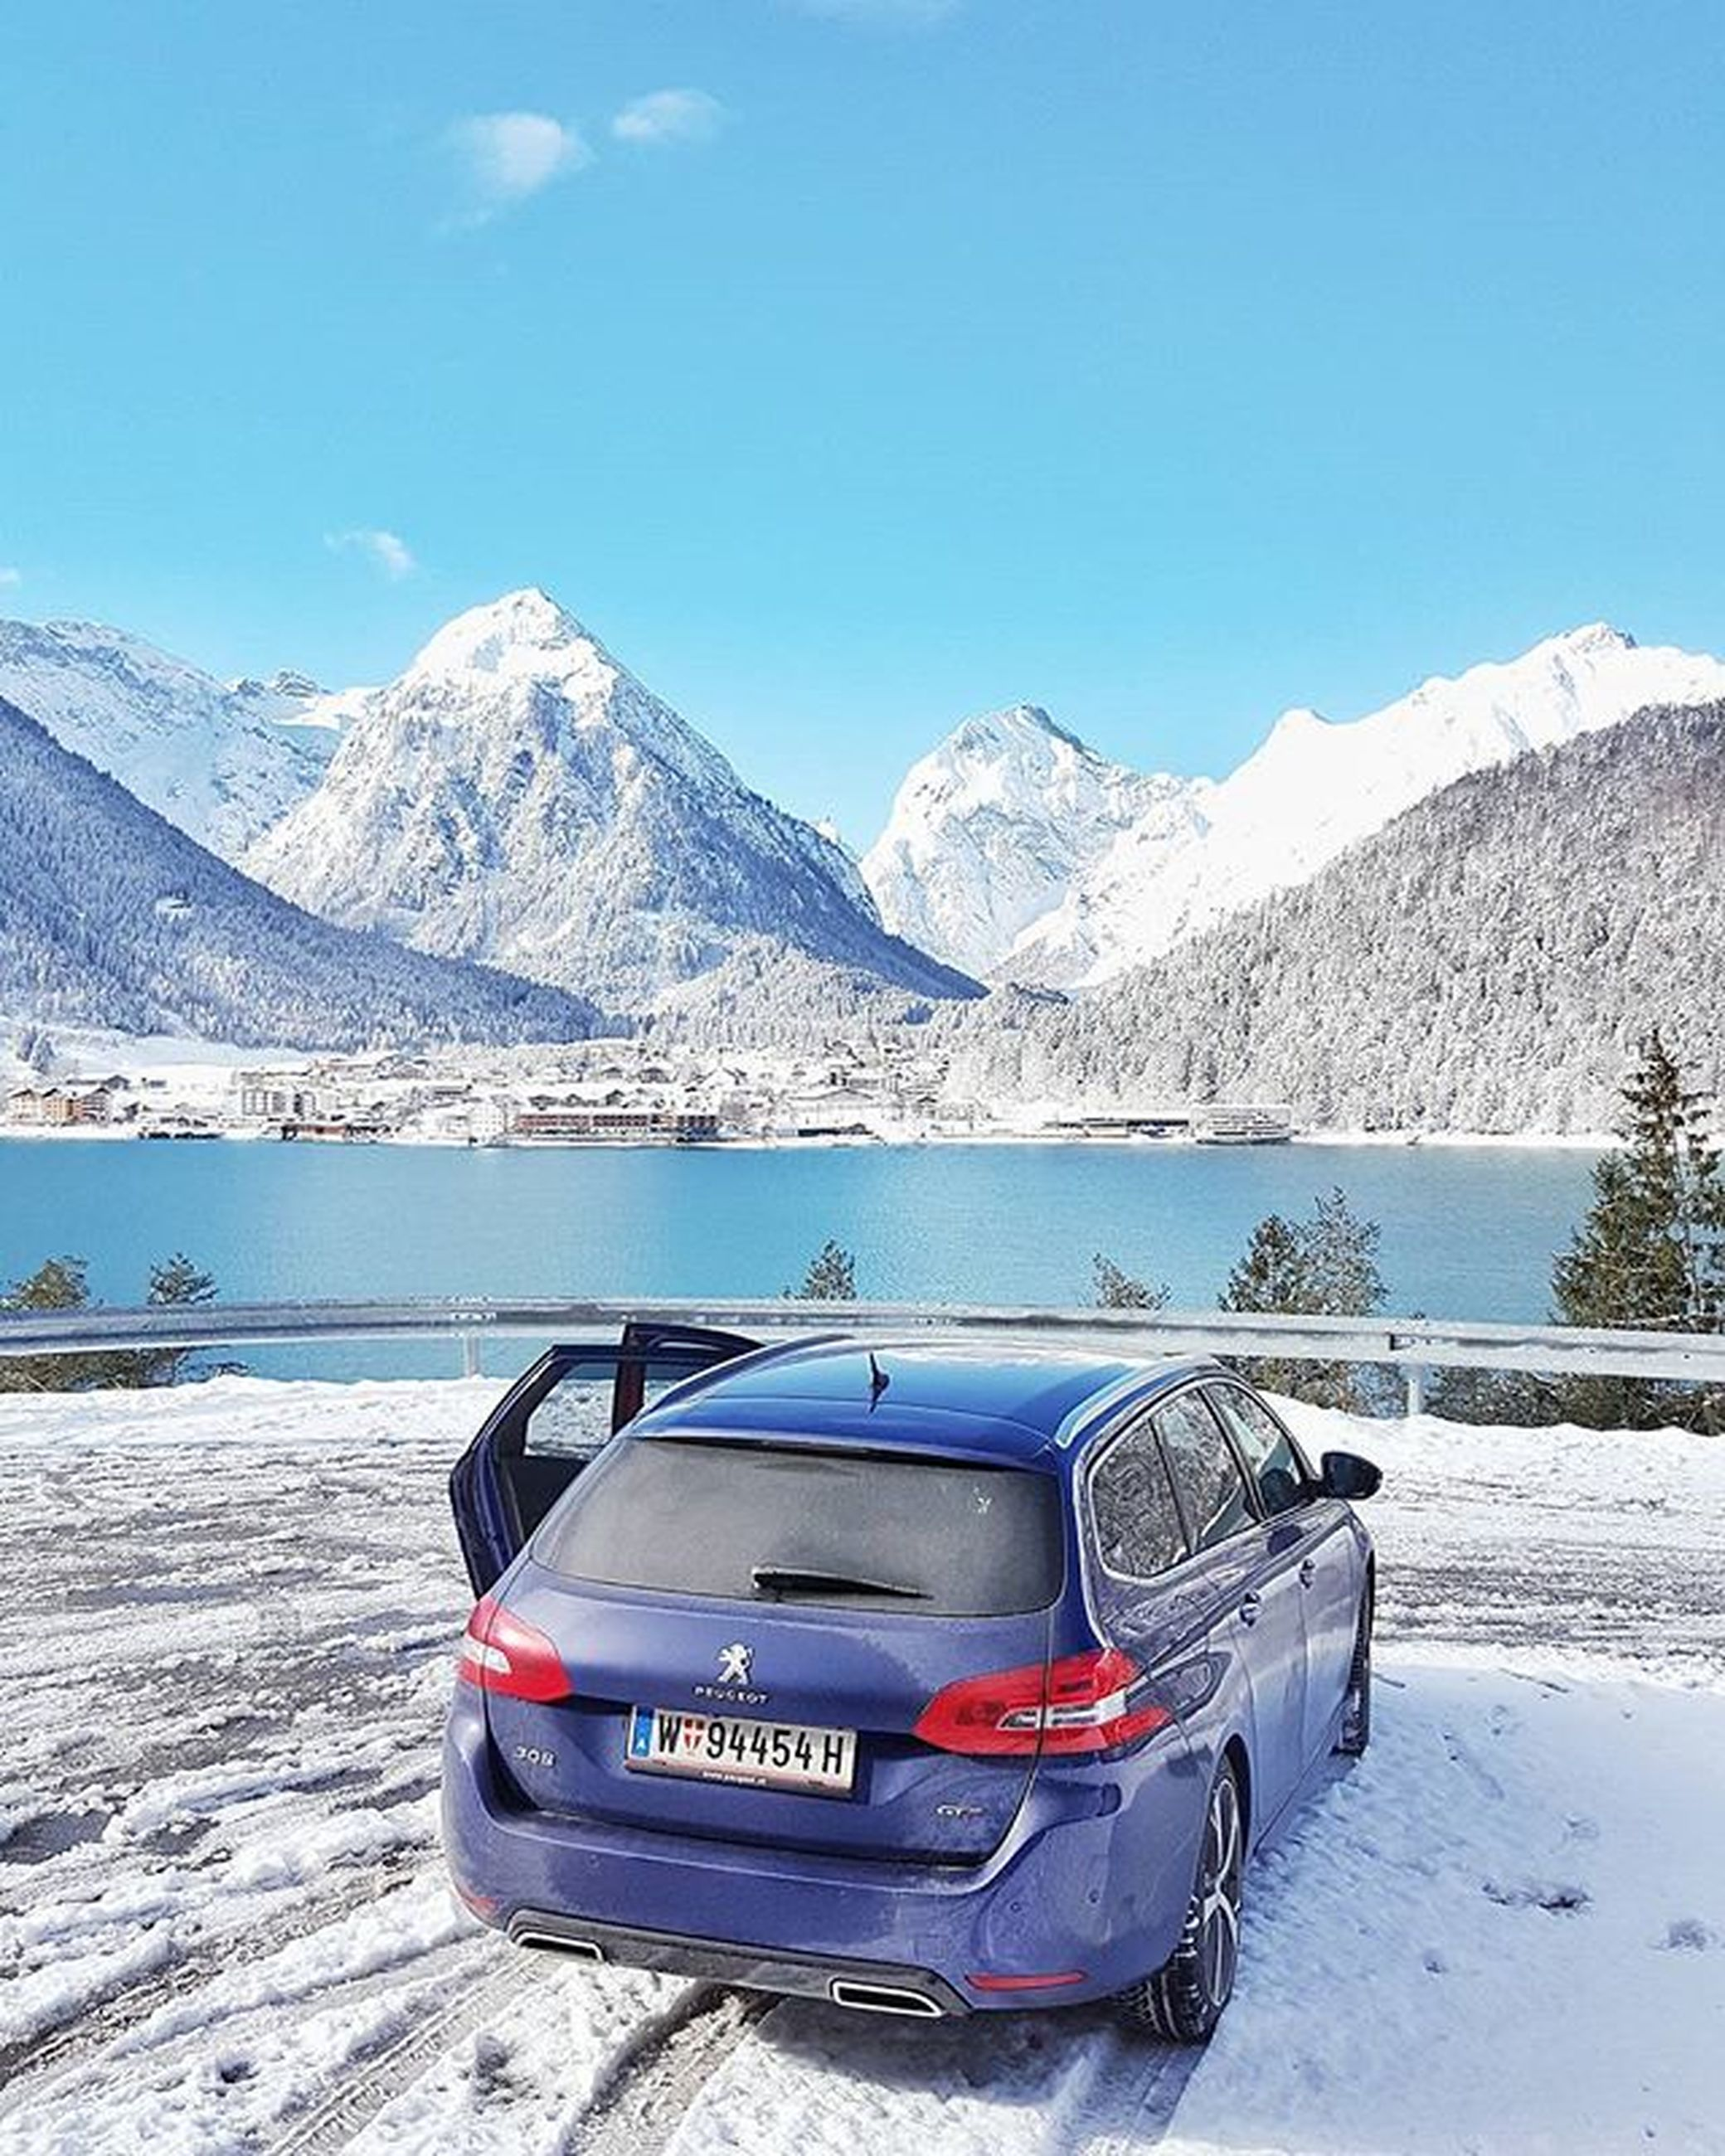 snow, winter, mountain, cold temperature, season, mountain range, snowcapped mountain, transportation, weather, mode of transport, tranquil scene, beauty in nature, scenics, tranquility, nature, landscape, covering, frozen, snowcapped, sky